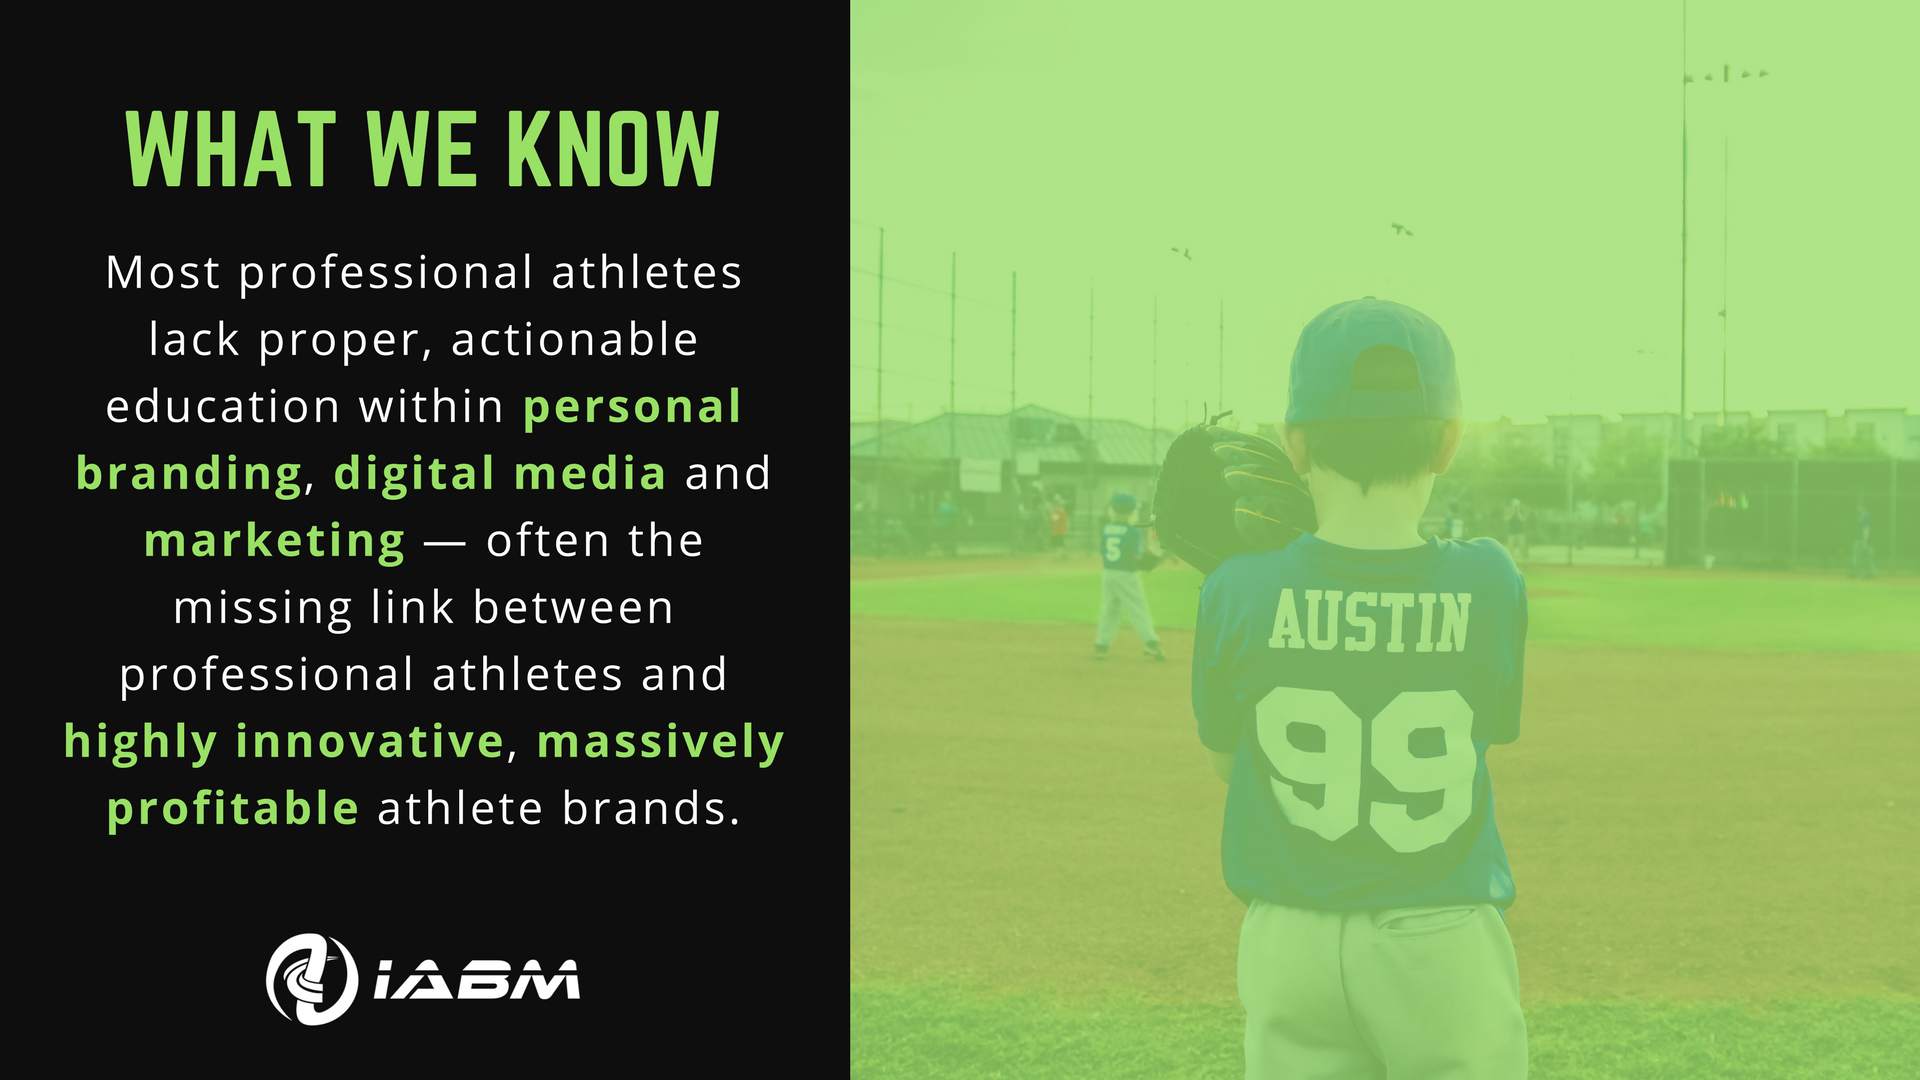 Athlete Branding and Marketing - Players Associations